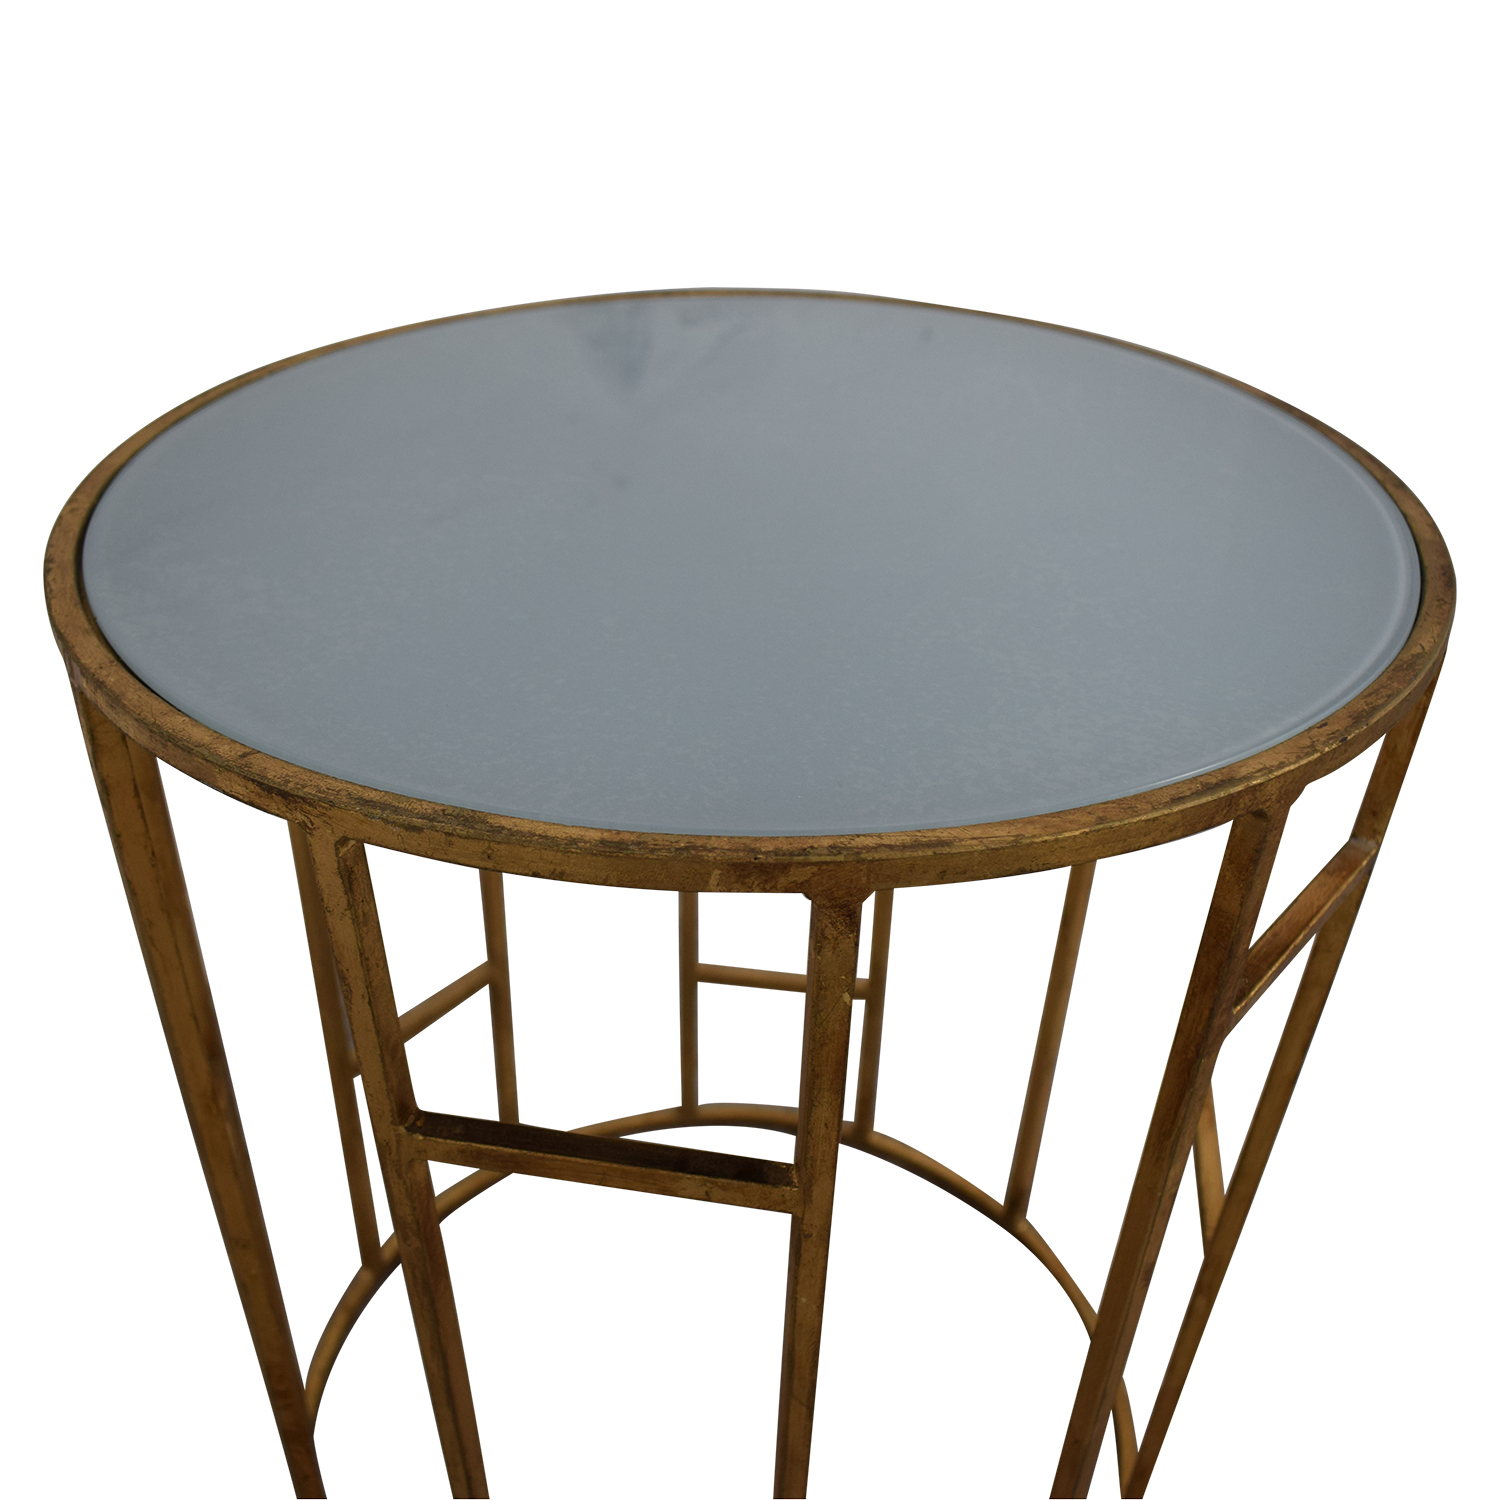 Safavieh Doreen Gold & Glass Accent Table / Accent Tables